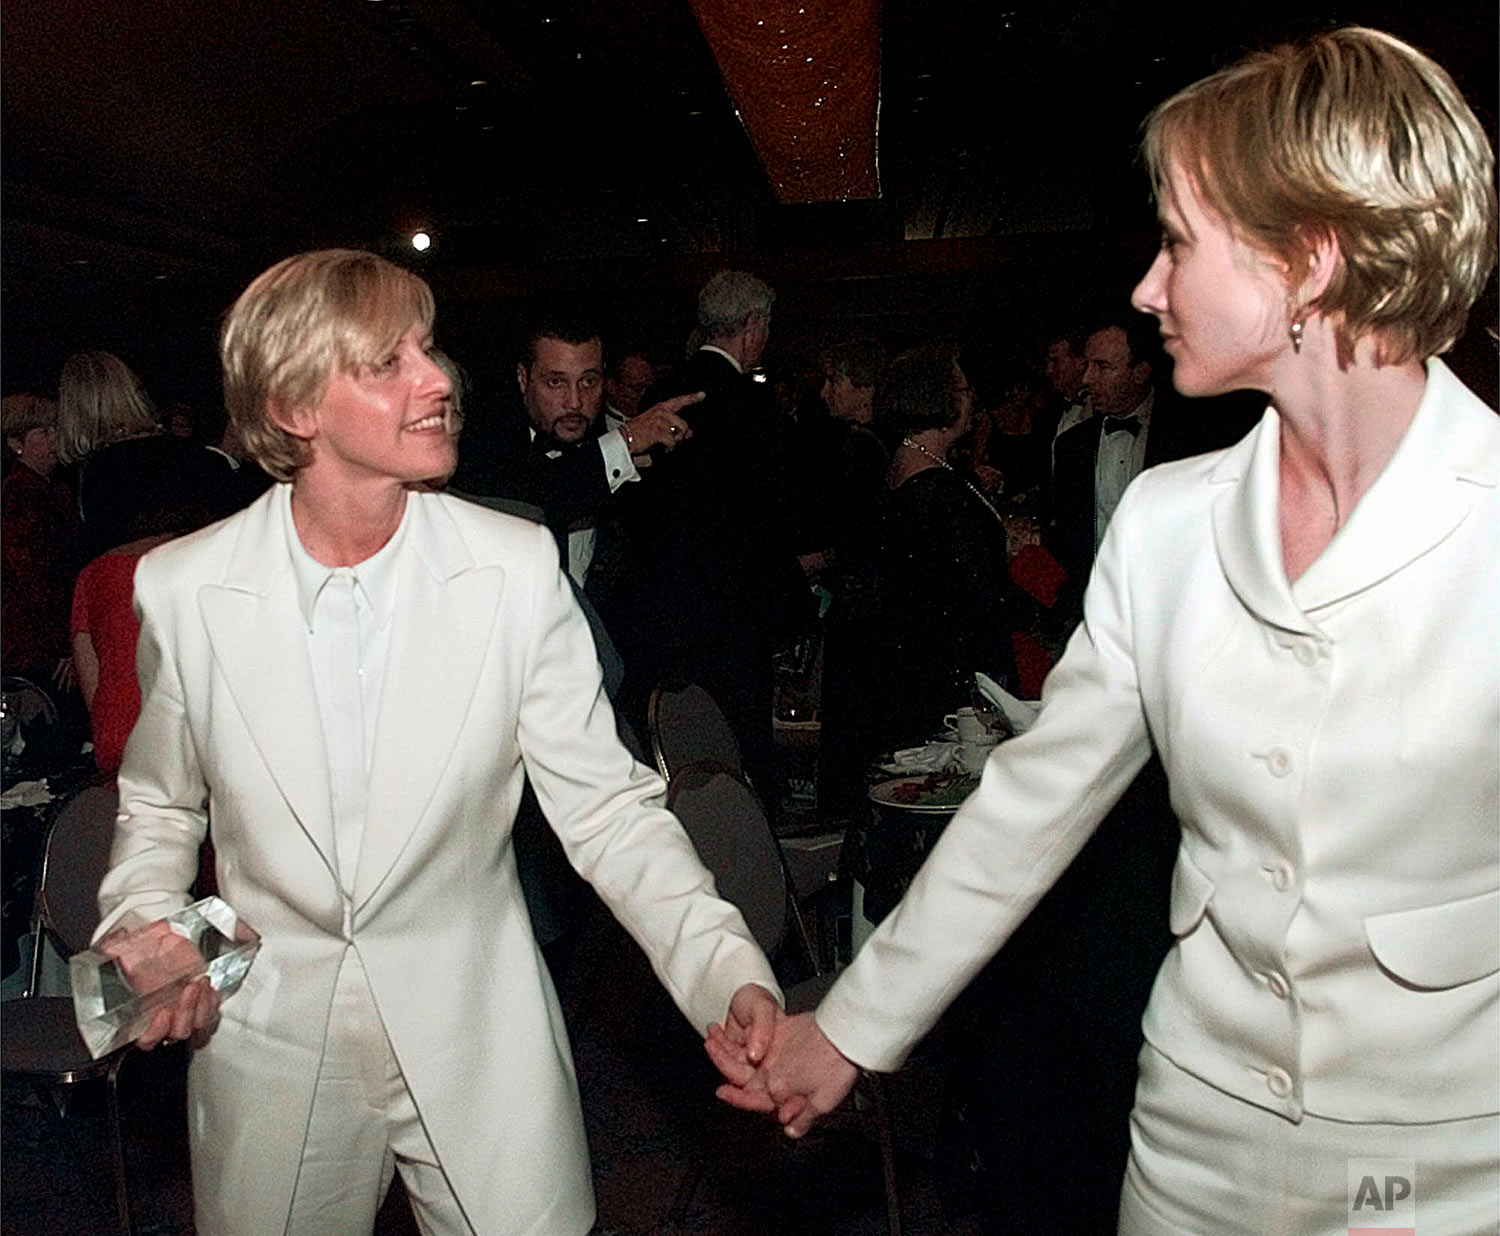 In this Saturday, Nov. 8, 1997 file photo, actress Ellen DeGeneres, left, and her companion, Anne Heche, leave the Human Rights Campaign national dinner in Washington after DeGeneres received her civil rights award. President Clinton spoke earlier at the dinner, before the nation's largest lesbian and male homosexual group--the first president to appear before such an audience. (AP Photo/Brian K. Diggs)